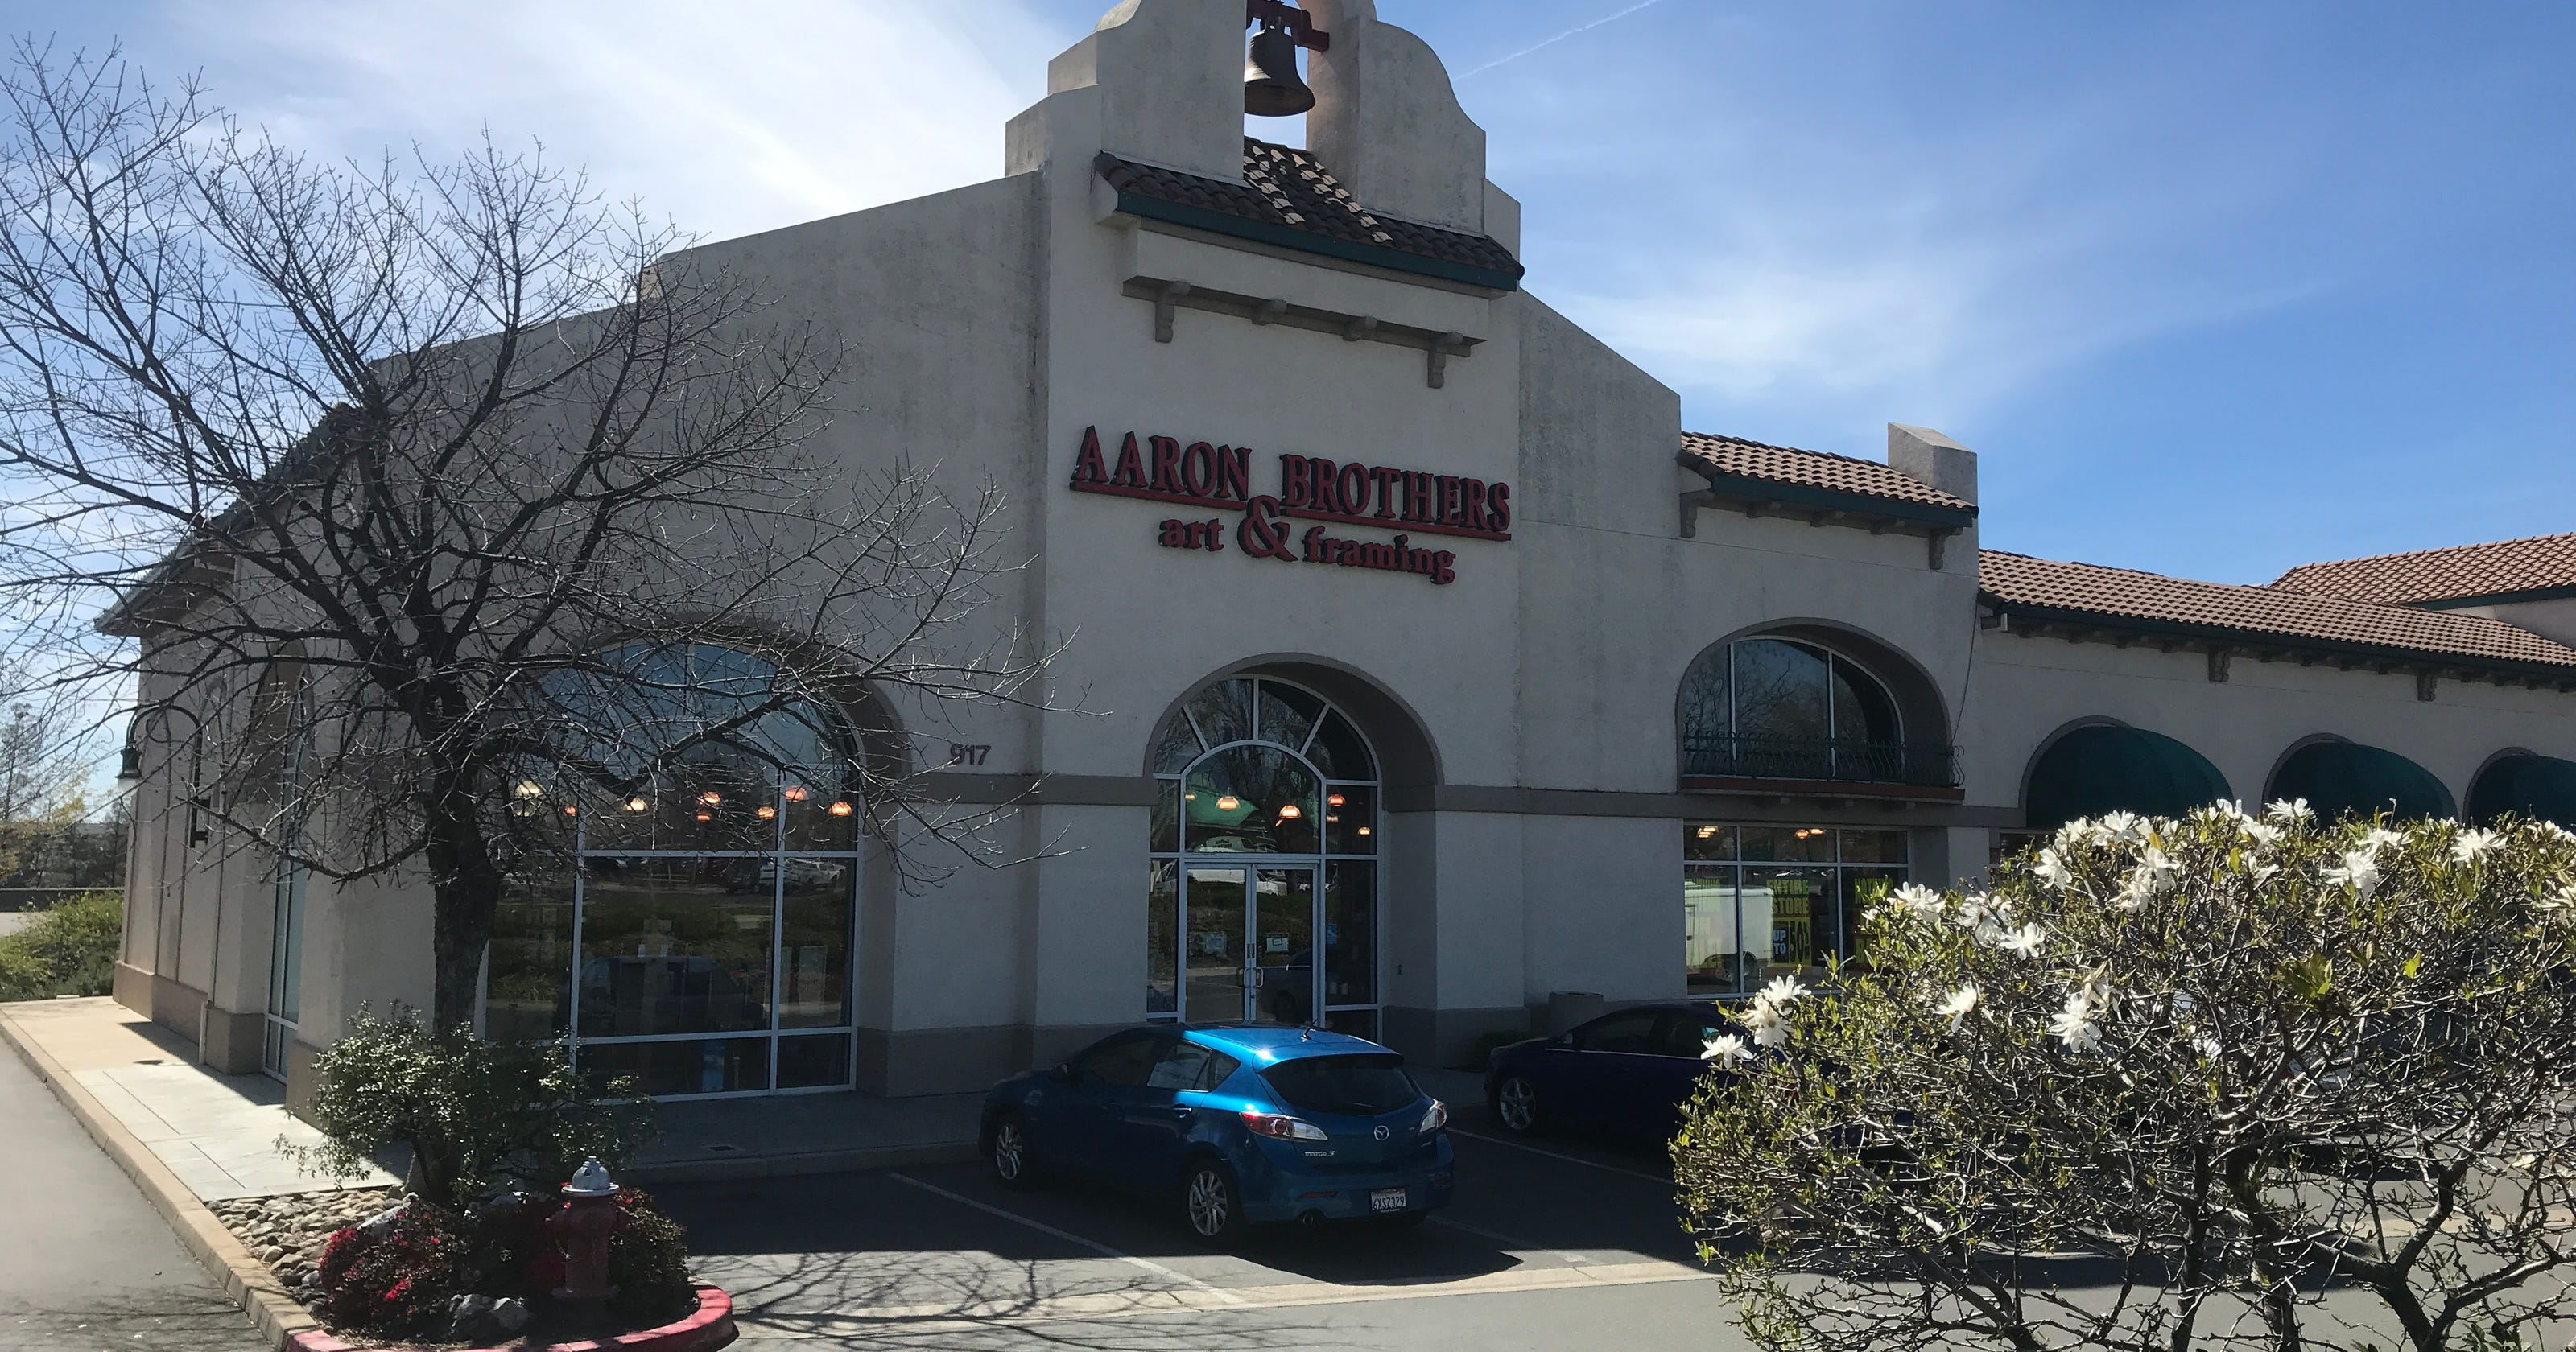 Aaron Brothers to close 94 stores, including Redding